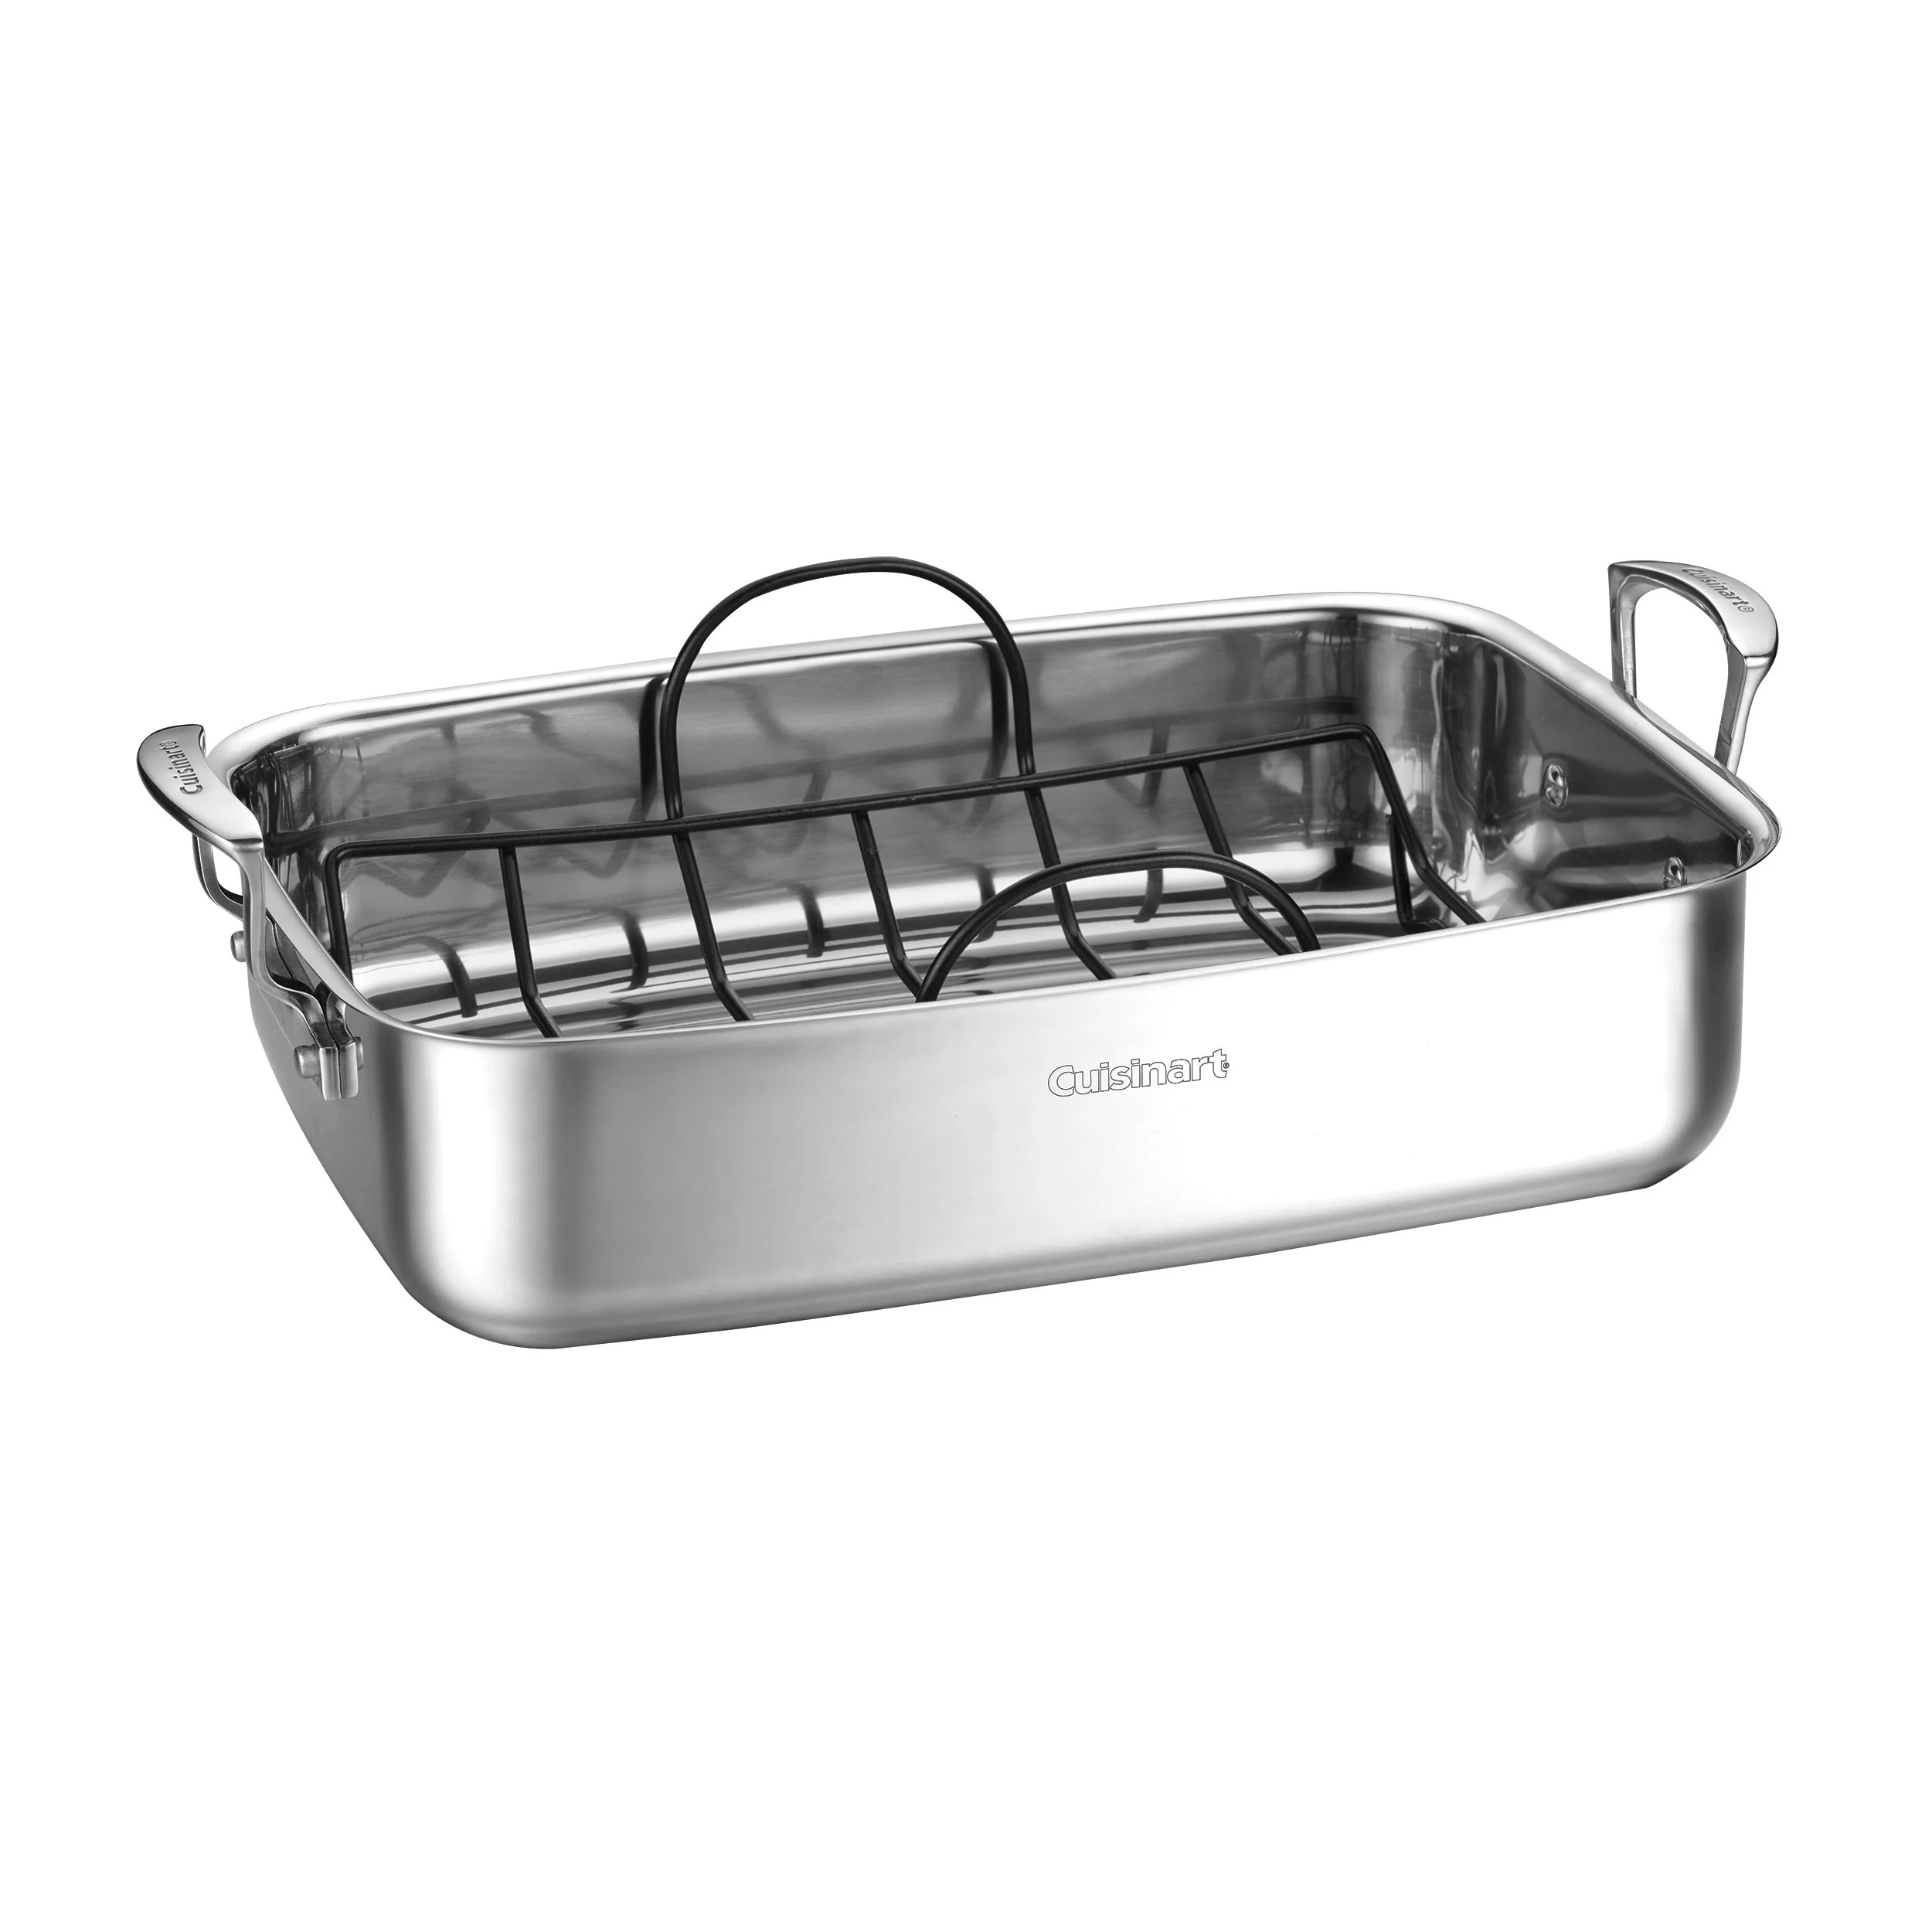 15 stainless steel roaster with non stick rack